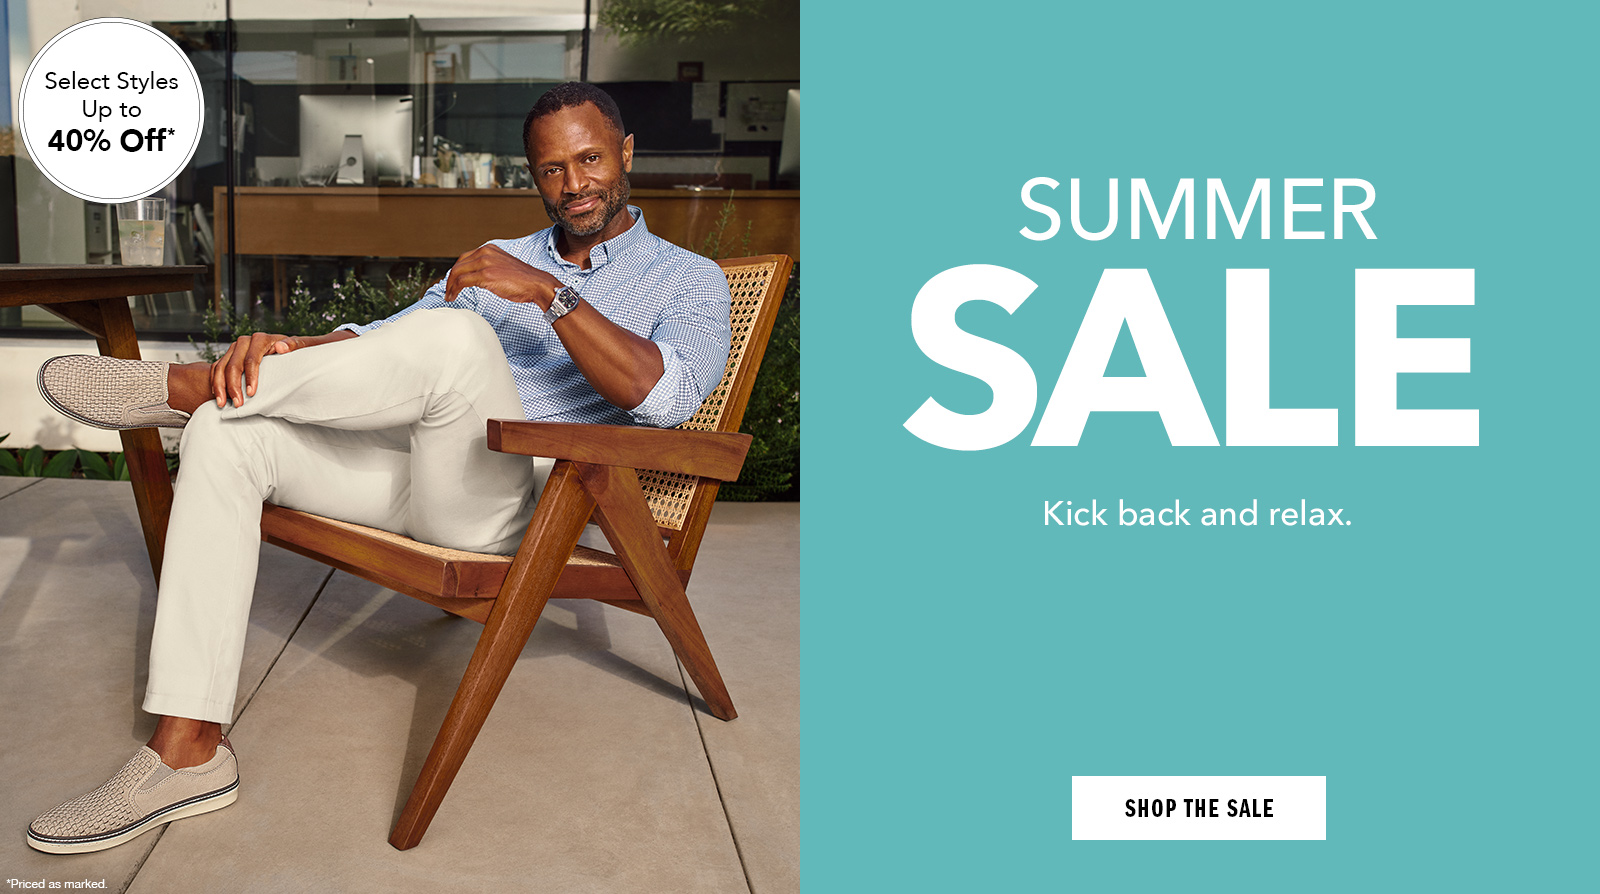 Take a Leisurely Approach - Shop Men's Summer Sale